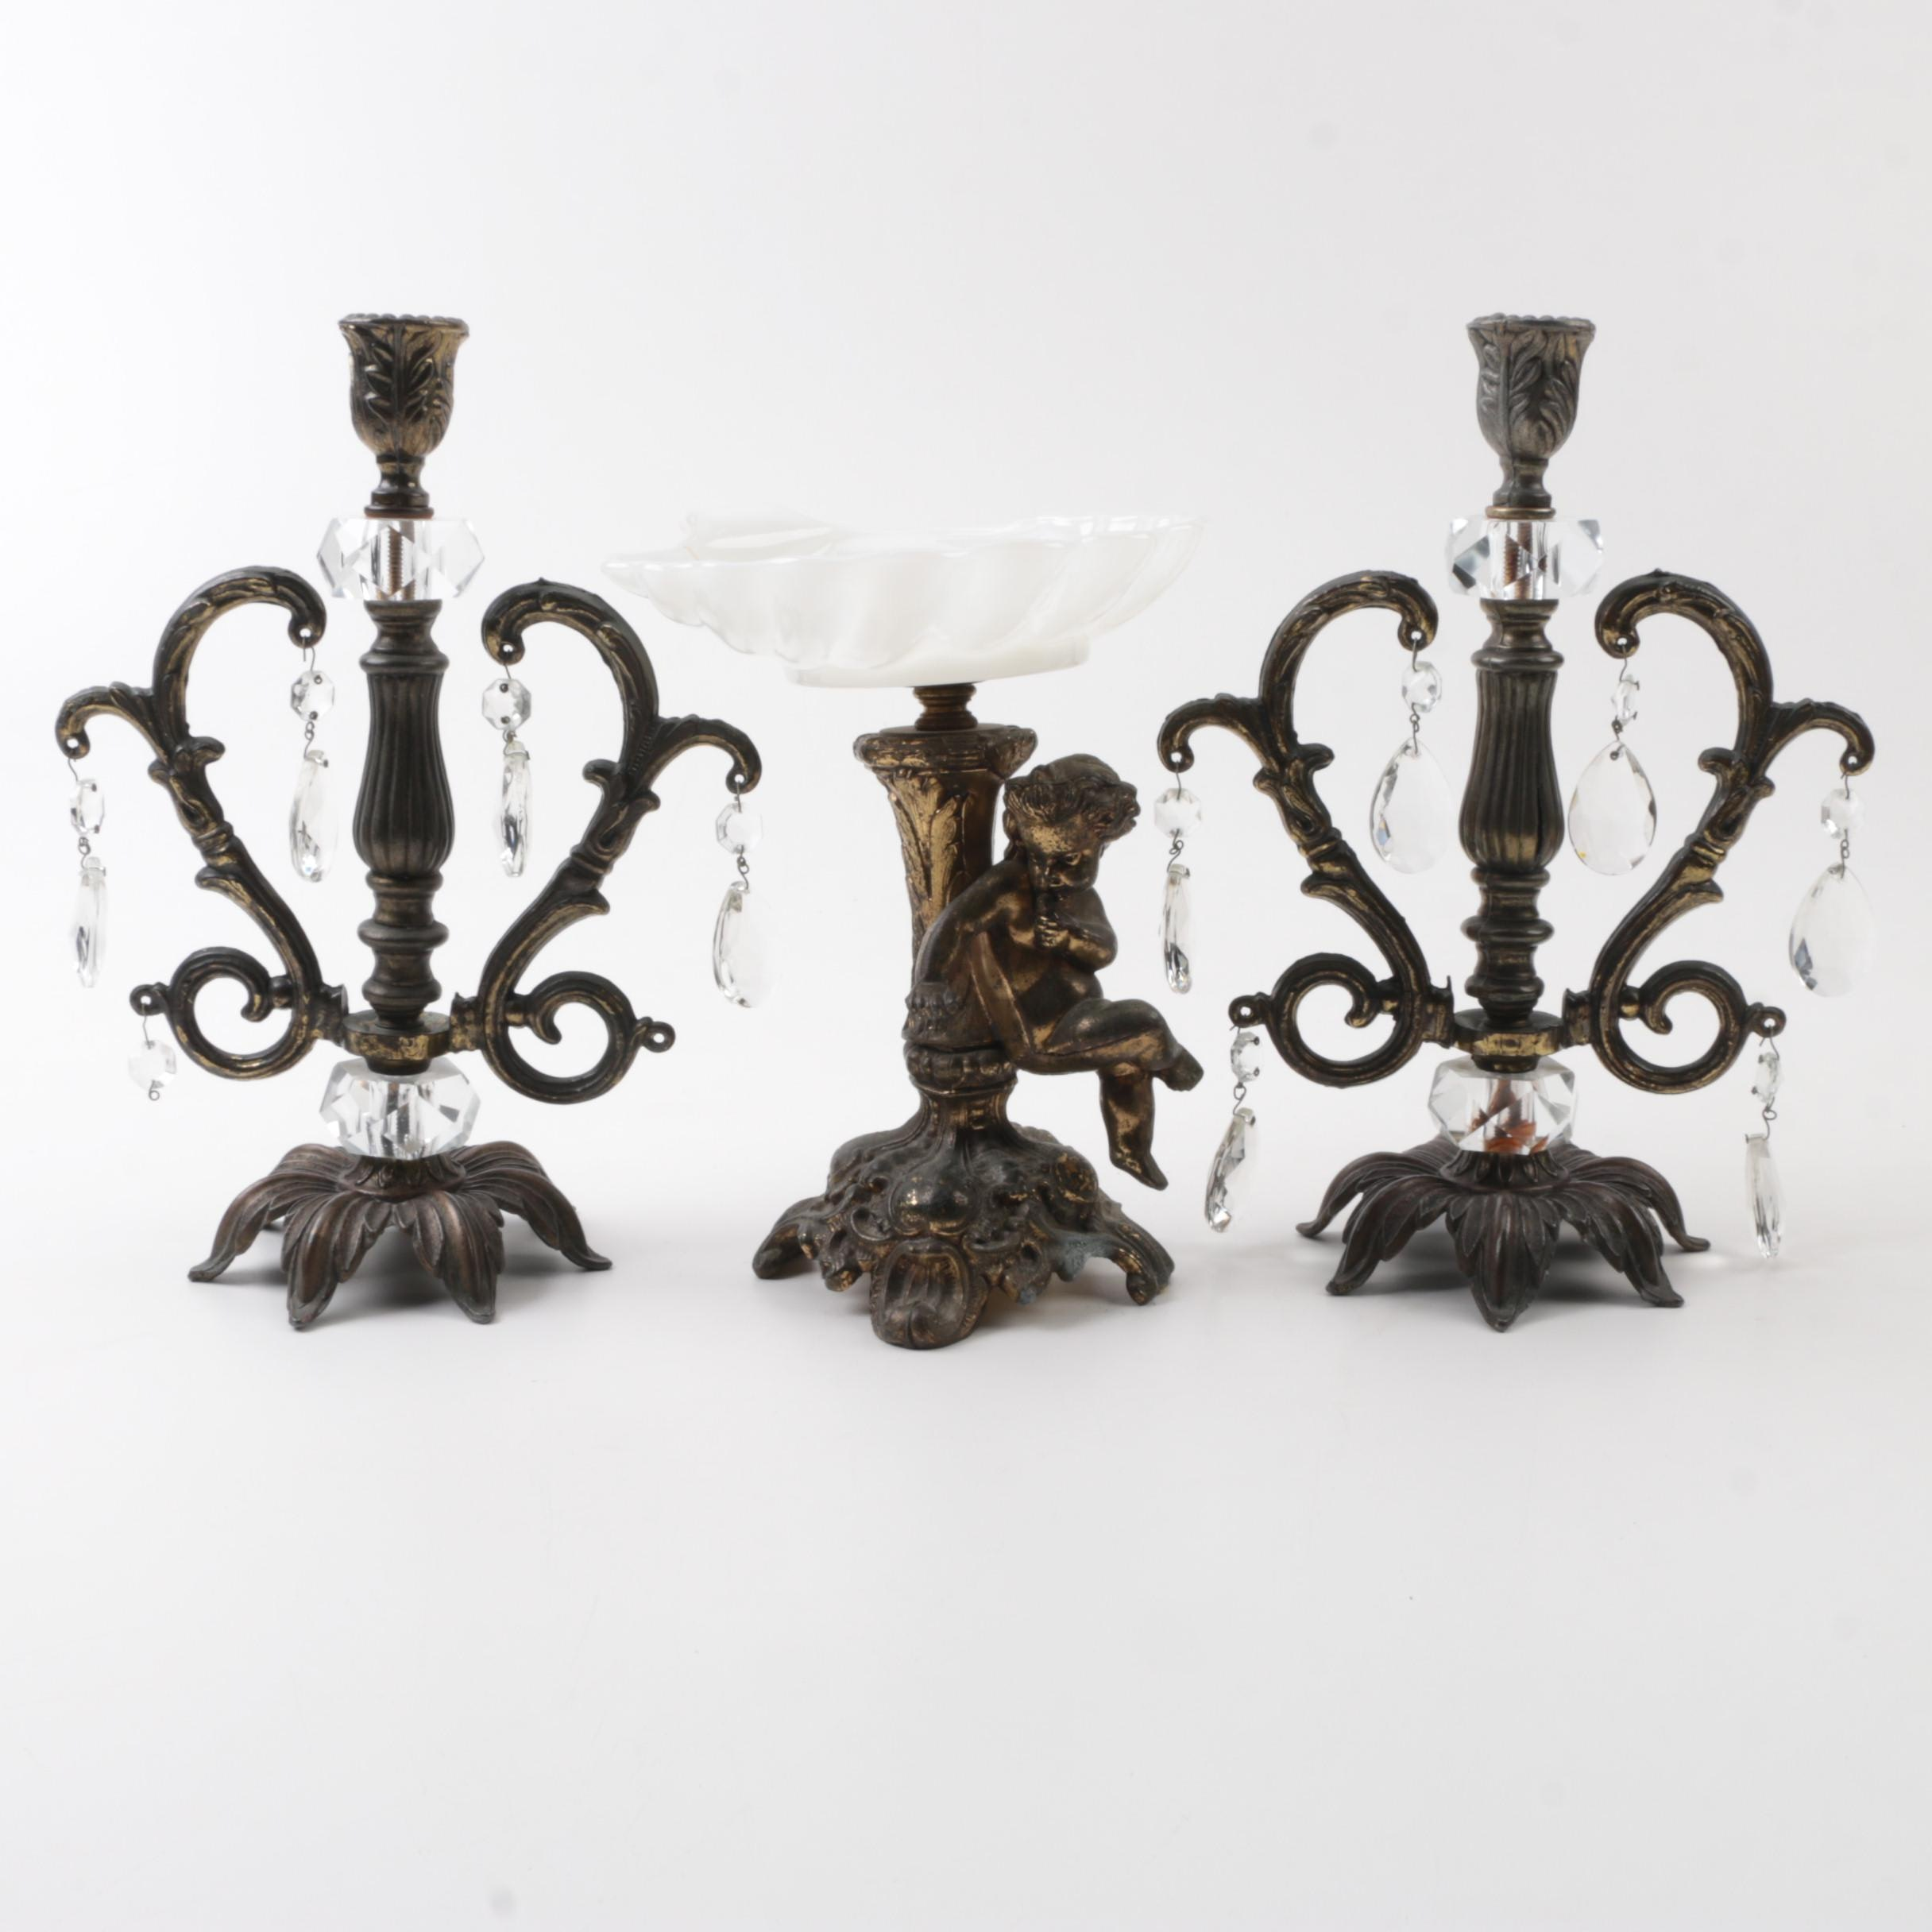 Vintage Baroque Style Brass Cherub Dish and Candlesticks